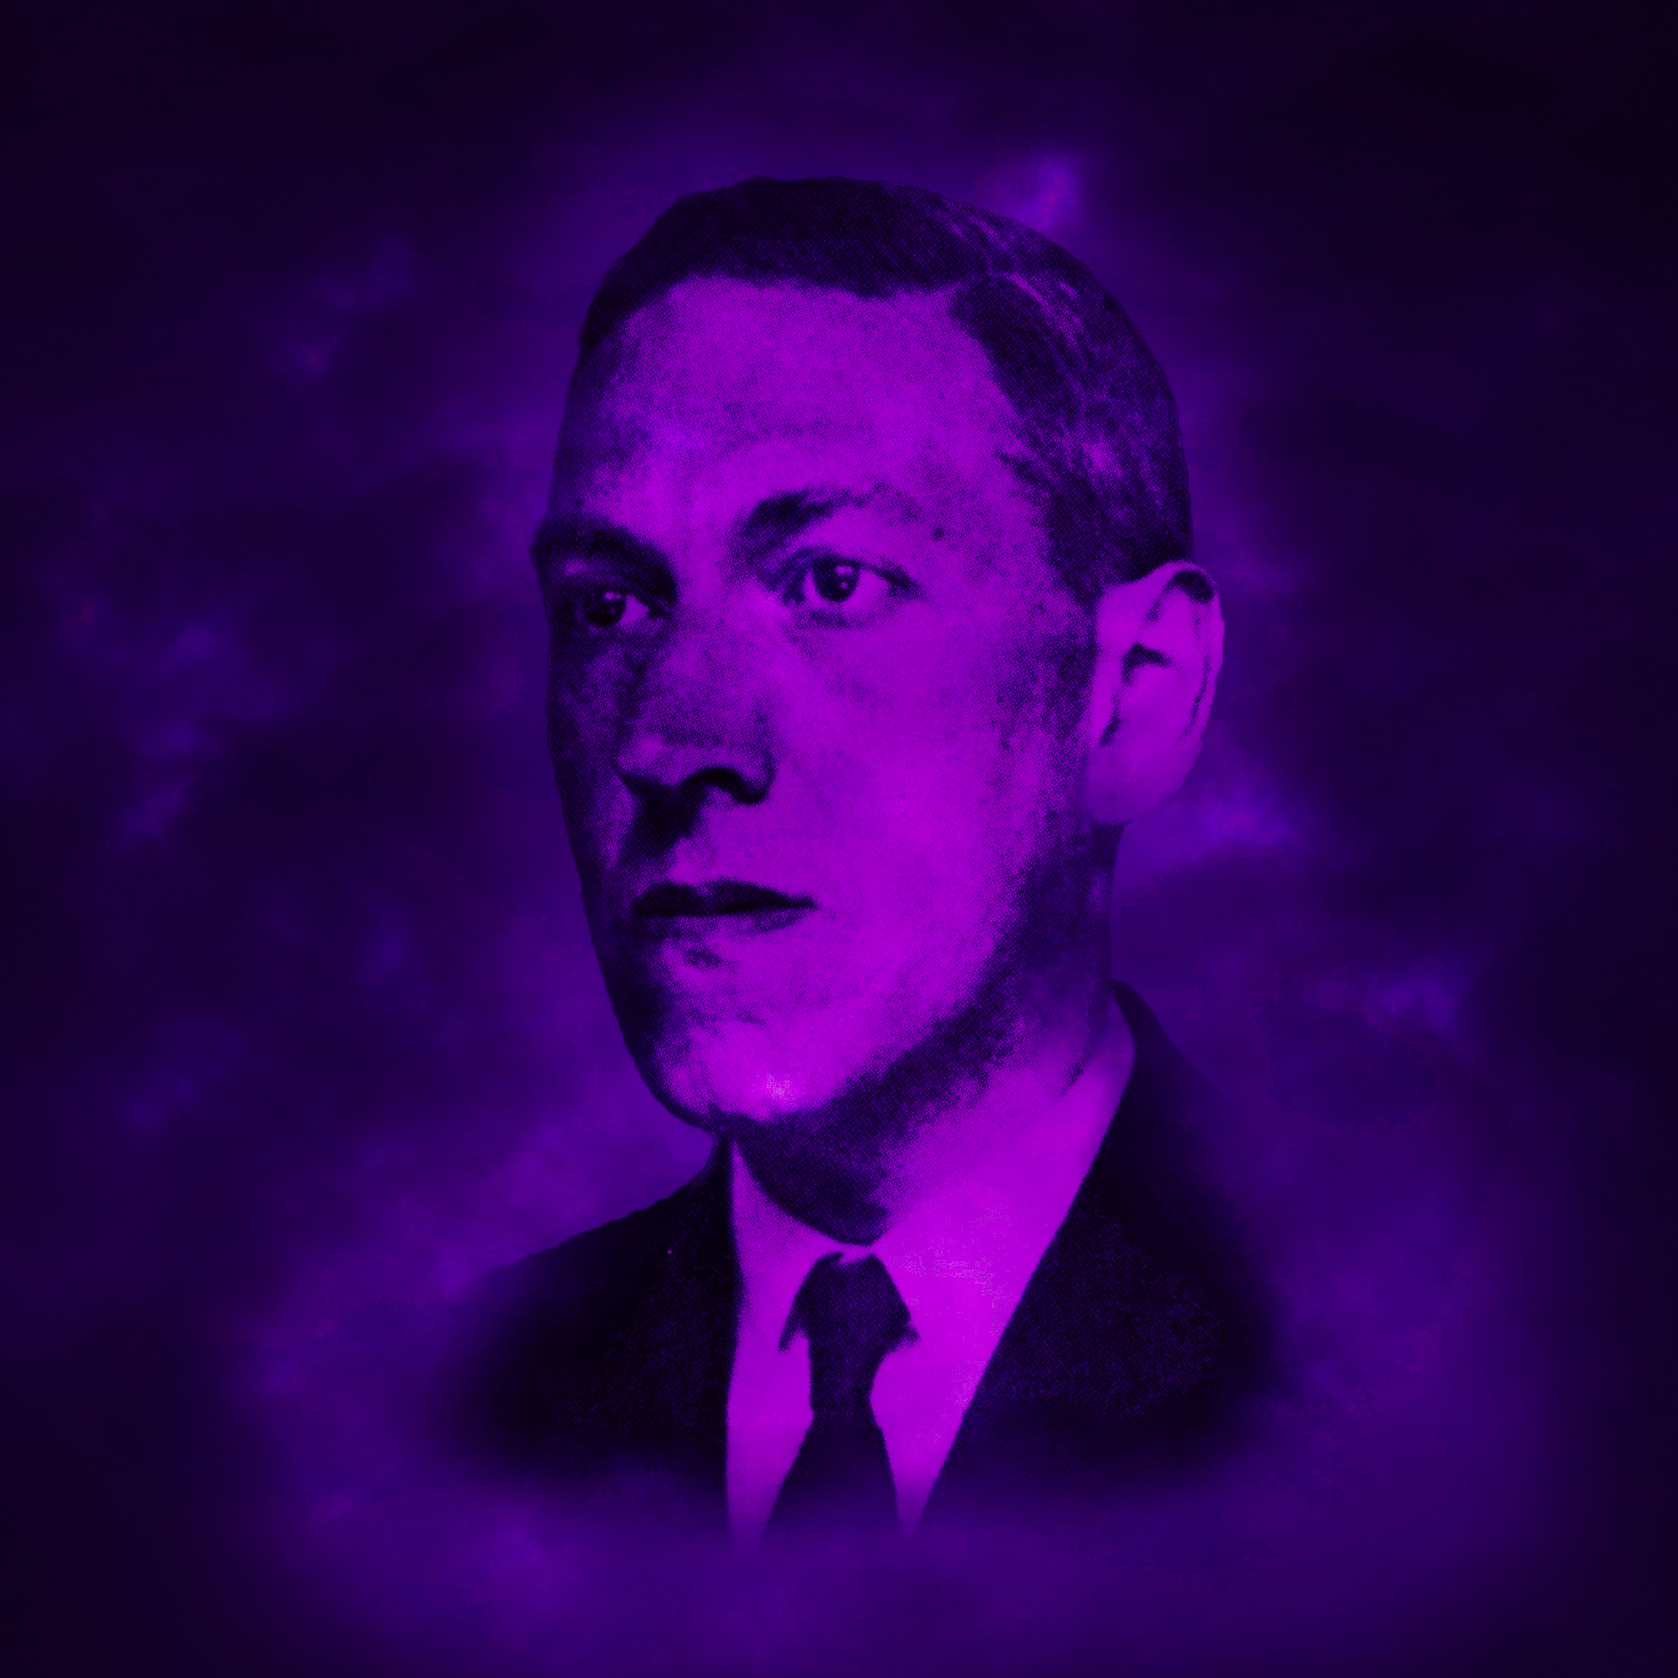 H. P. Lovecraft design by Alva Aur